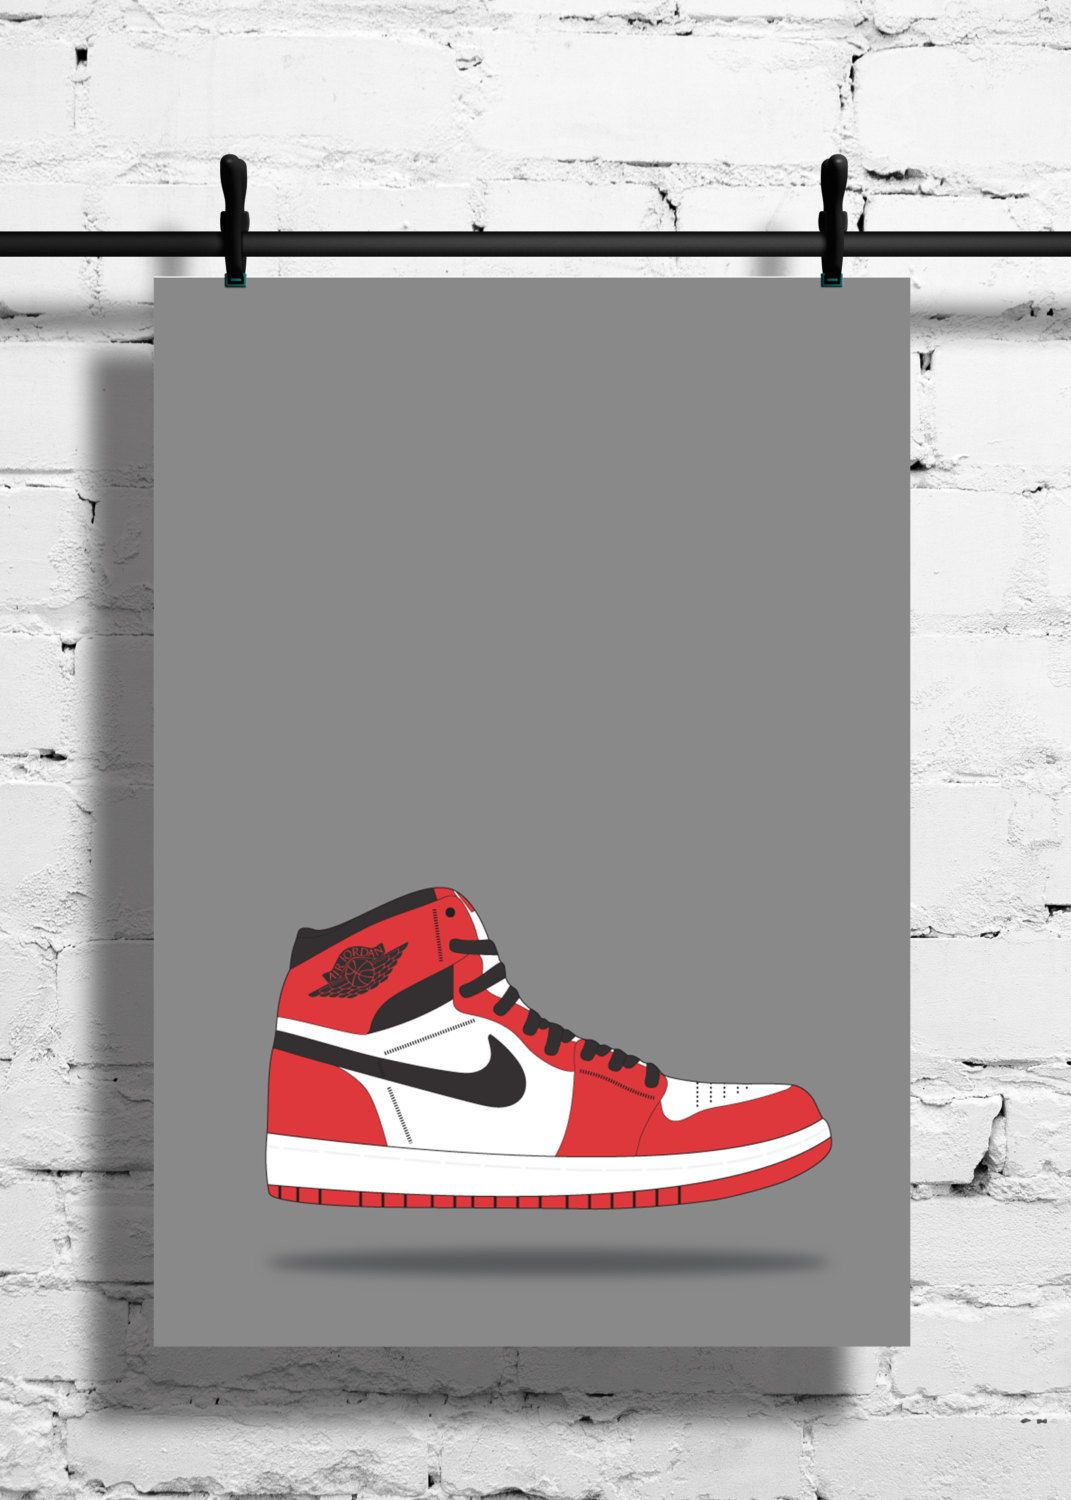 Nike Air Jordan 1 Chicago Poster – 1985 – Sneaker Poster – A4 - A3 –  Digital – Red – Black - White – Art – Sneaker - Basketball - Chicago by ... 8a1a5c527